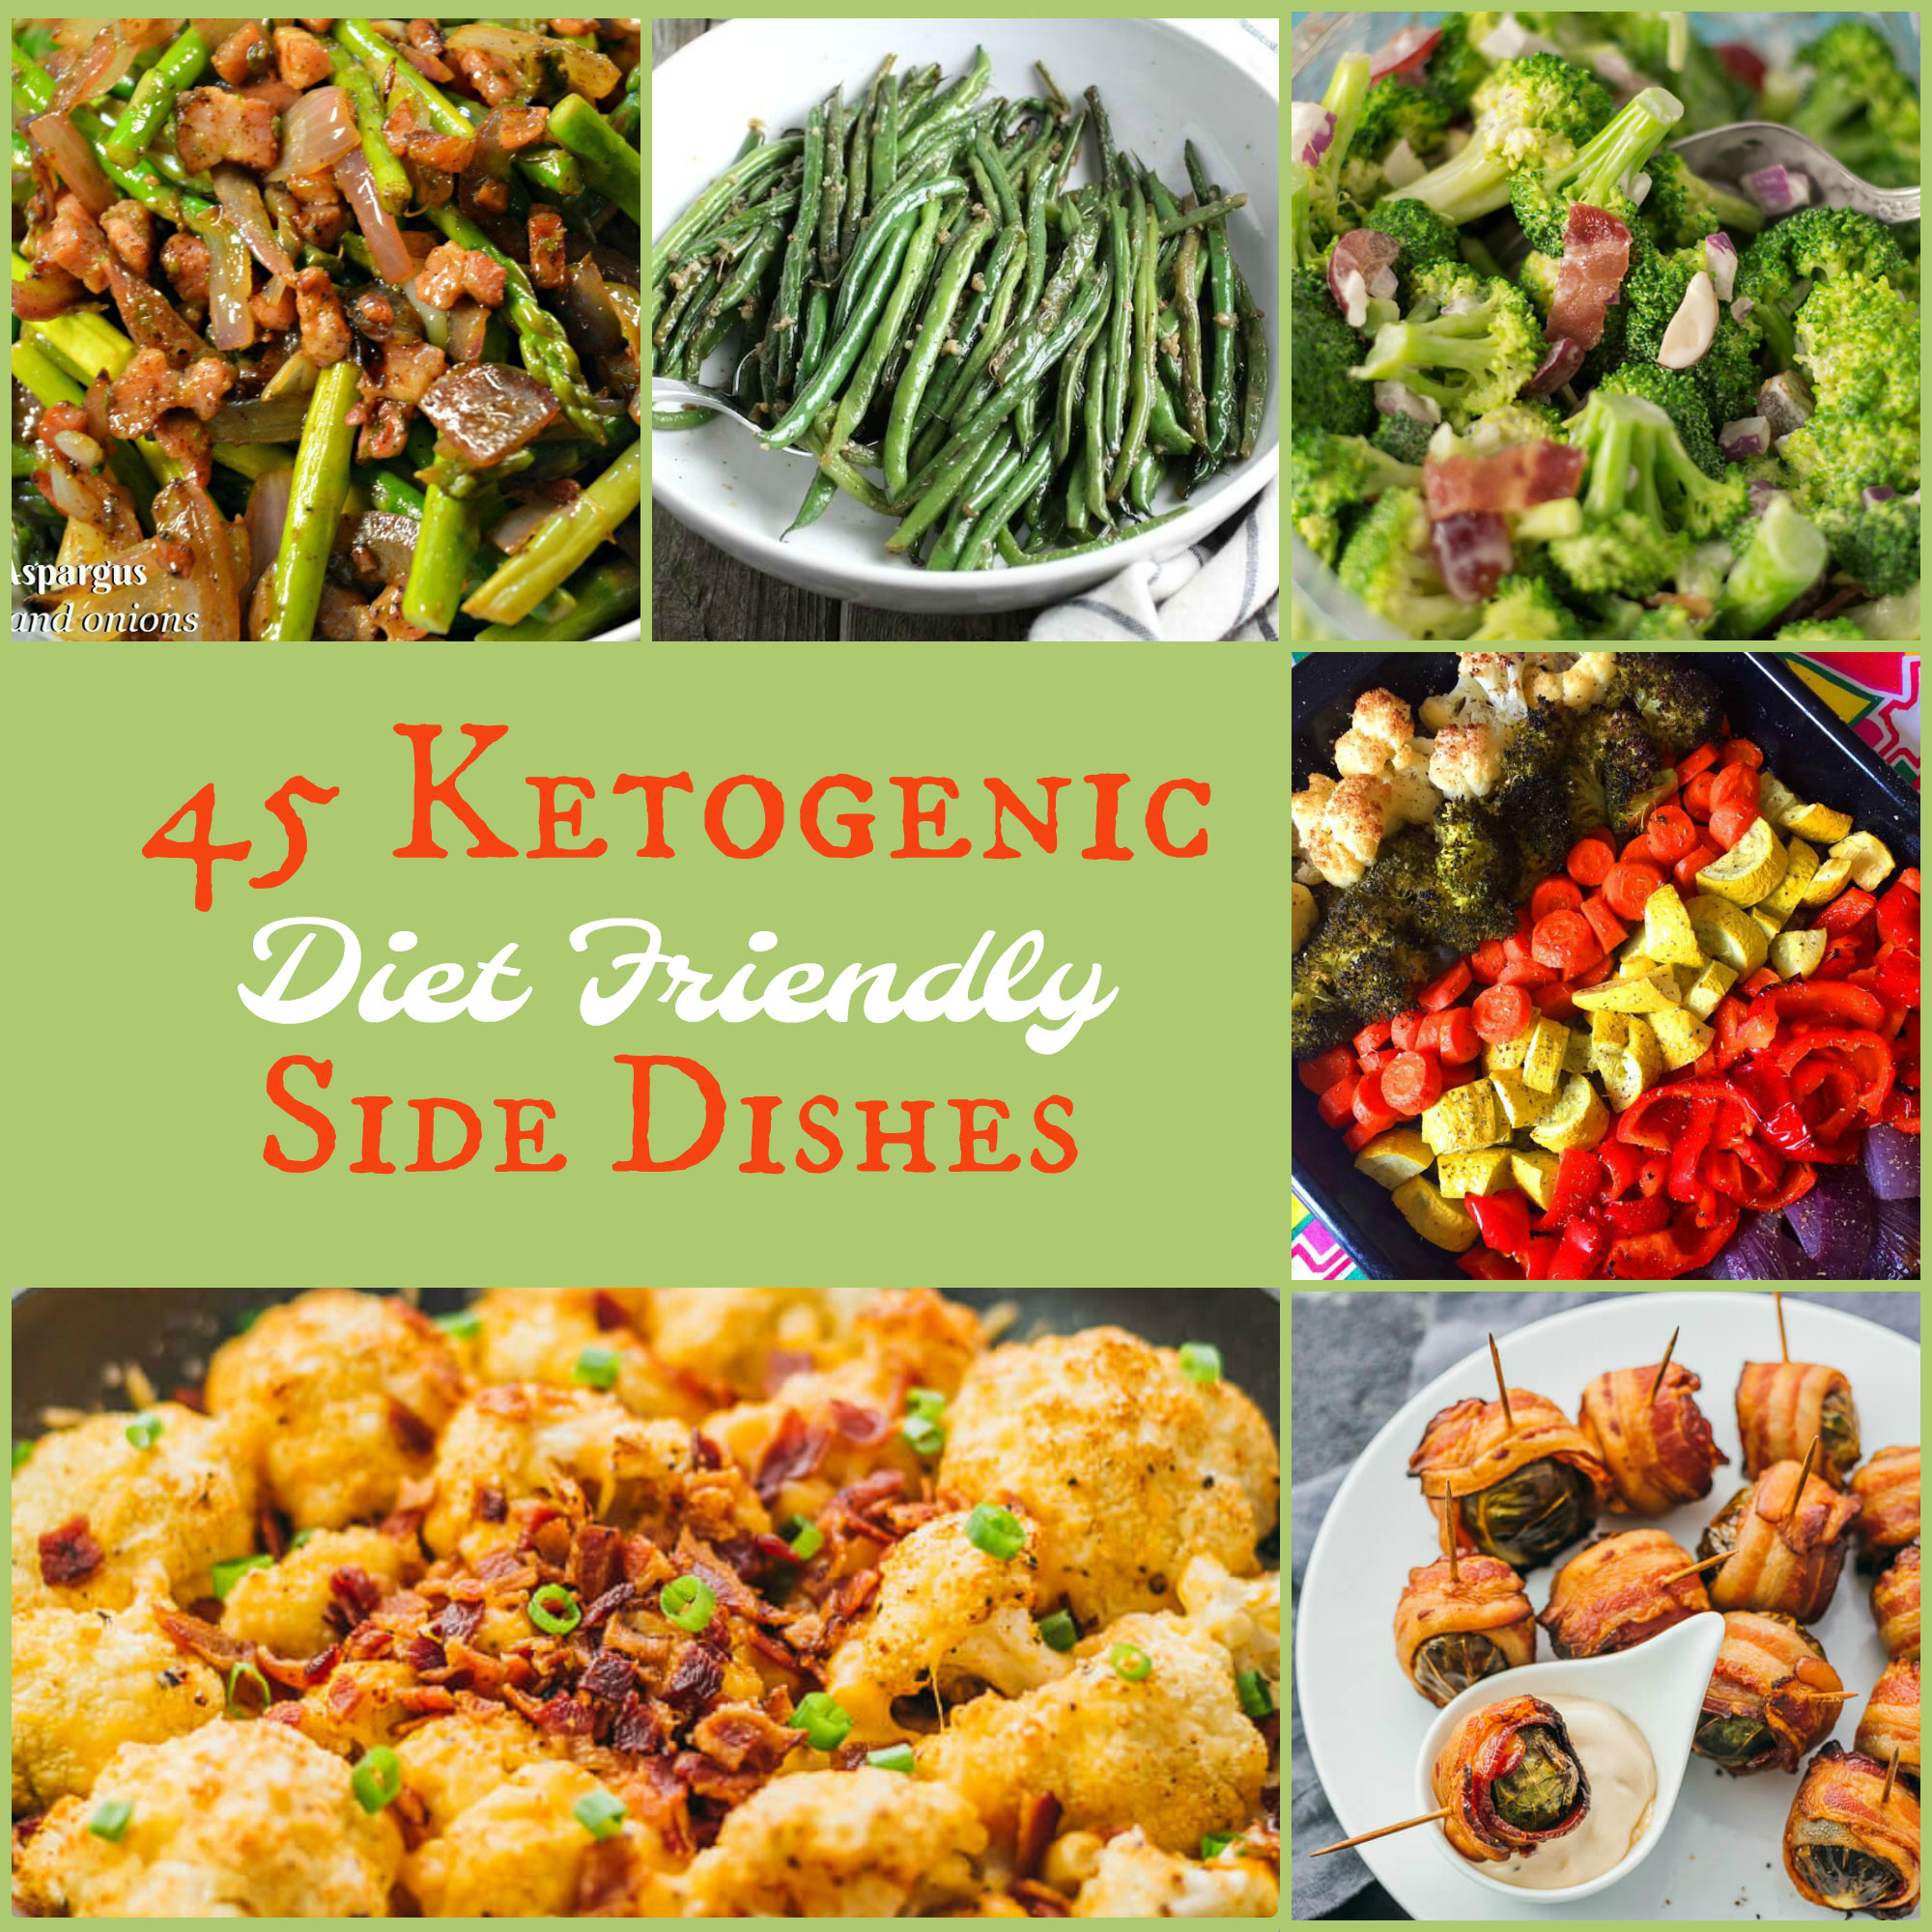 Keto Diet Side Dishes For The Holidays. Ketogenic Recipe